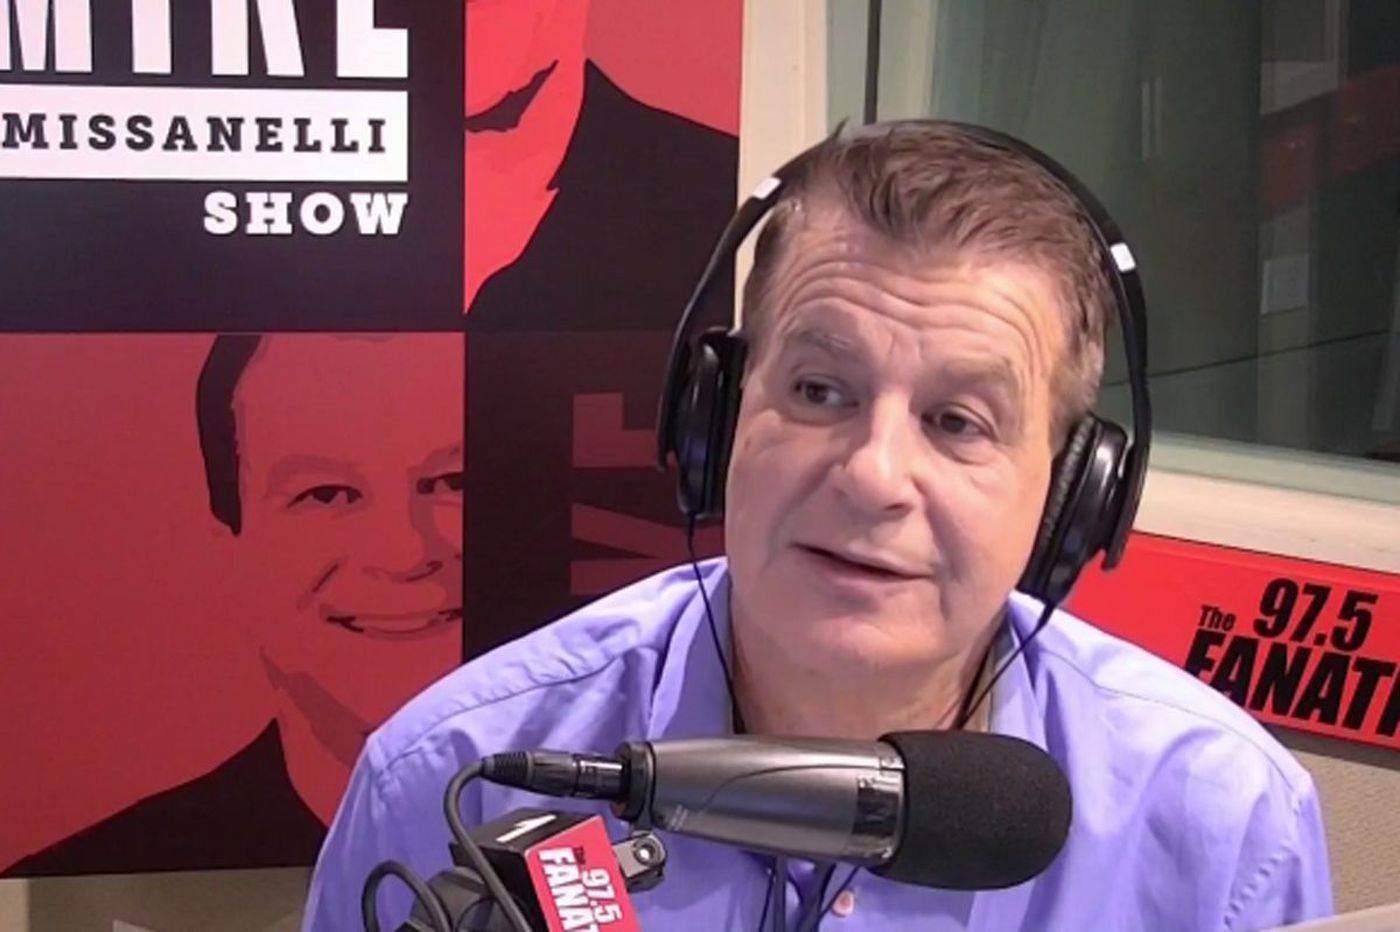 Mike Missanelli dethroned by WIP in Philly sports radio ratings